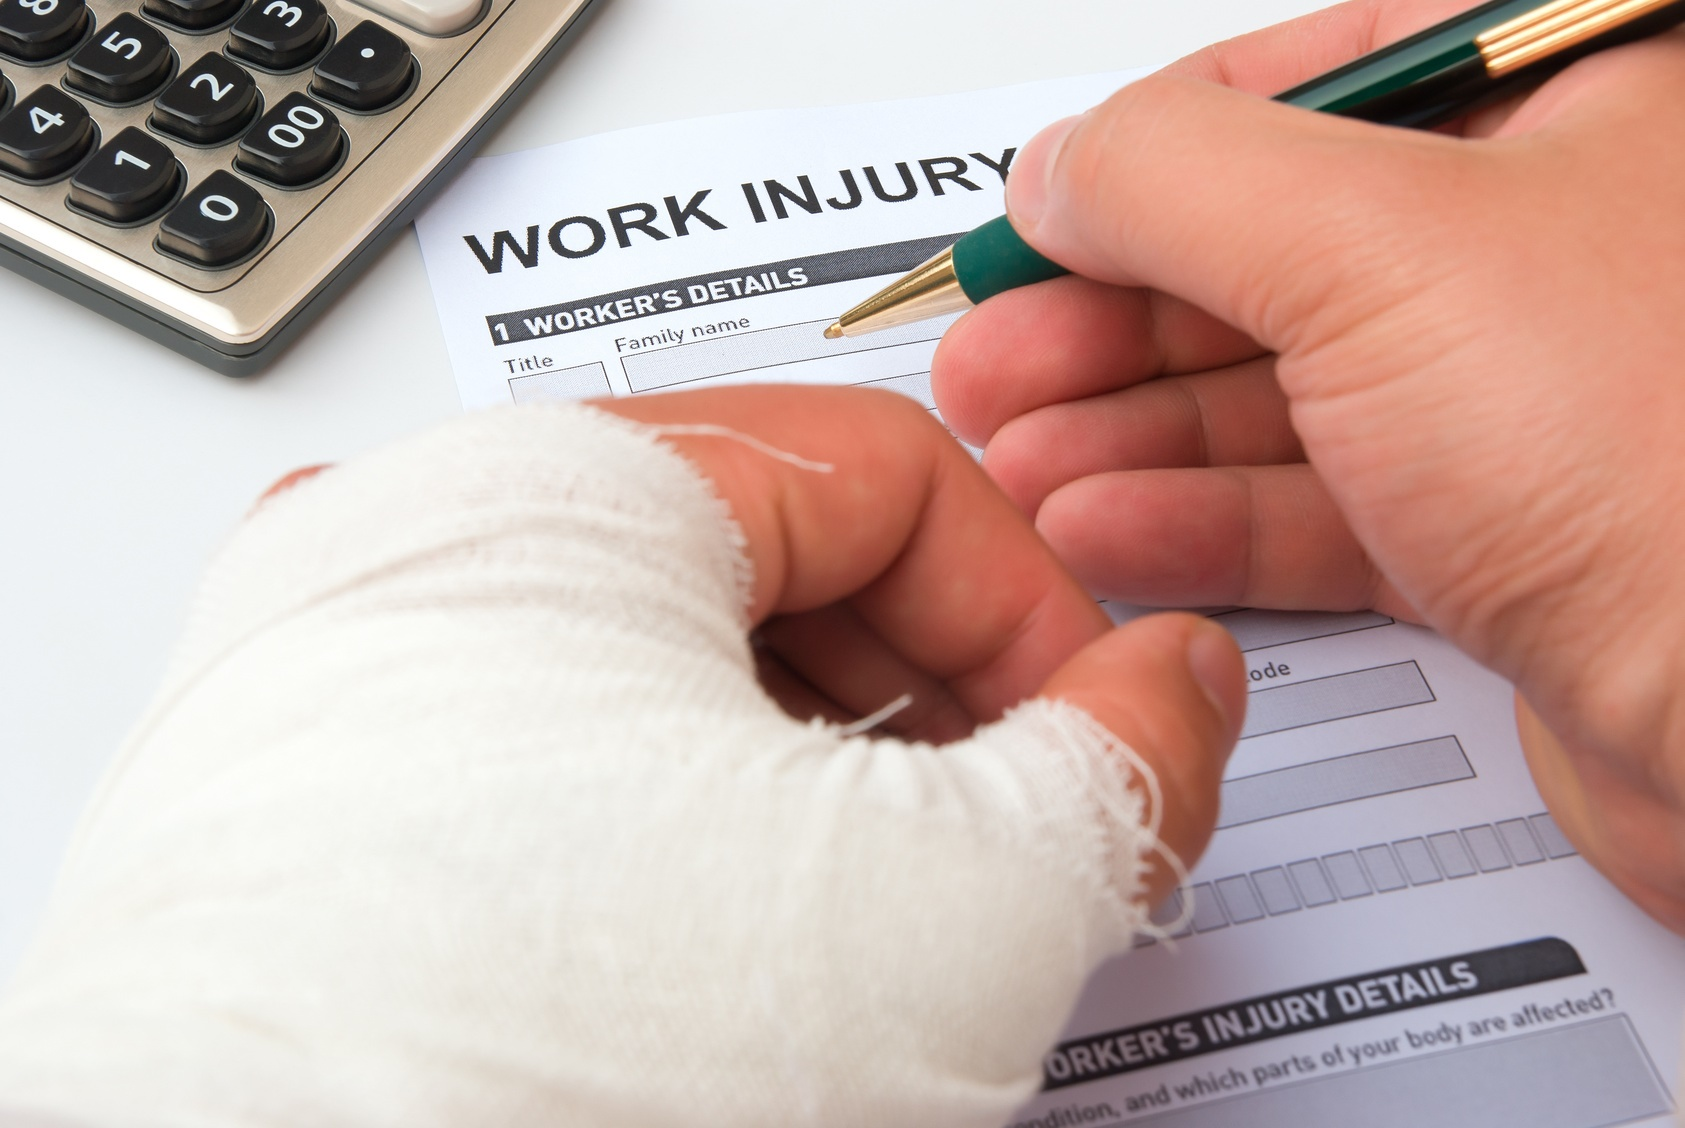 Dubai sets rules for gov't staff hit by injuries